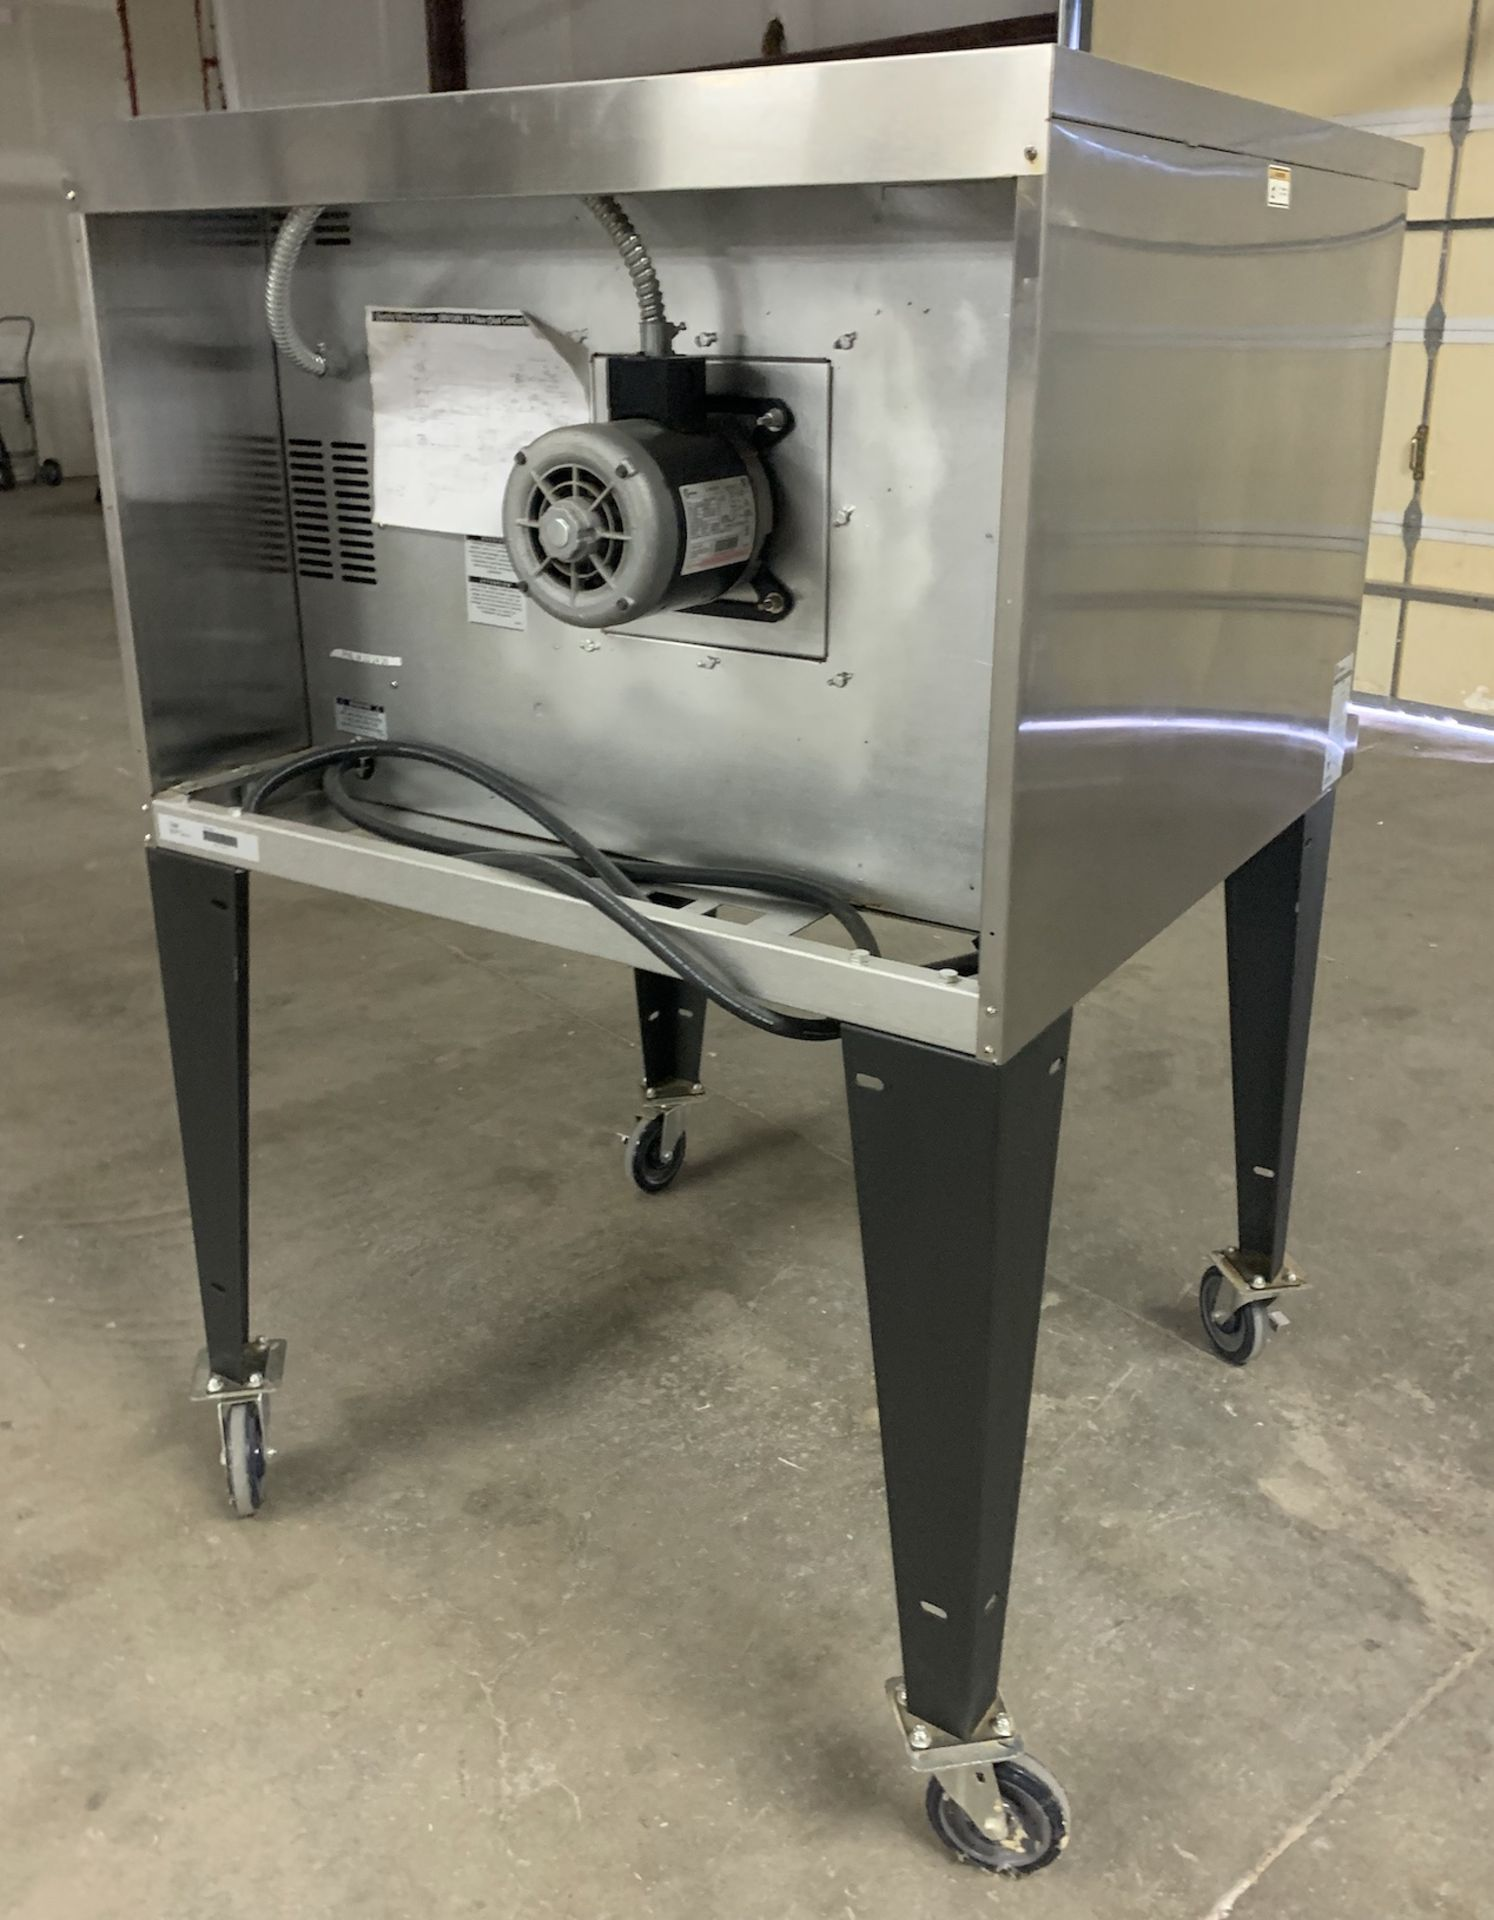 Used Bakers Pride Cyclone Series Single Deck Full Size Electric Decarb Oven. Model BCO-E1w/ 39 trays - Image 4 of 8